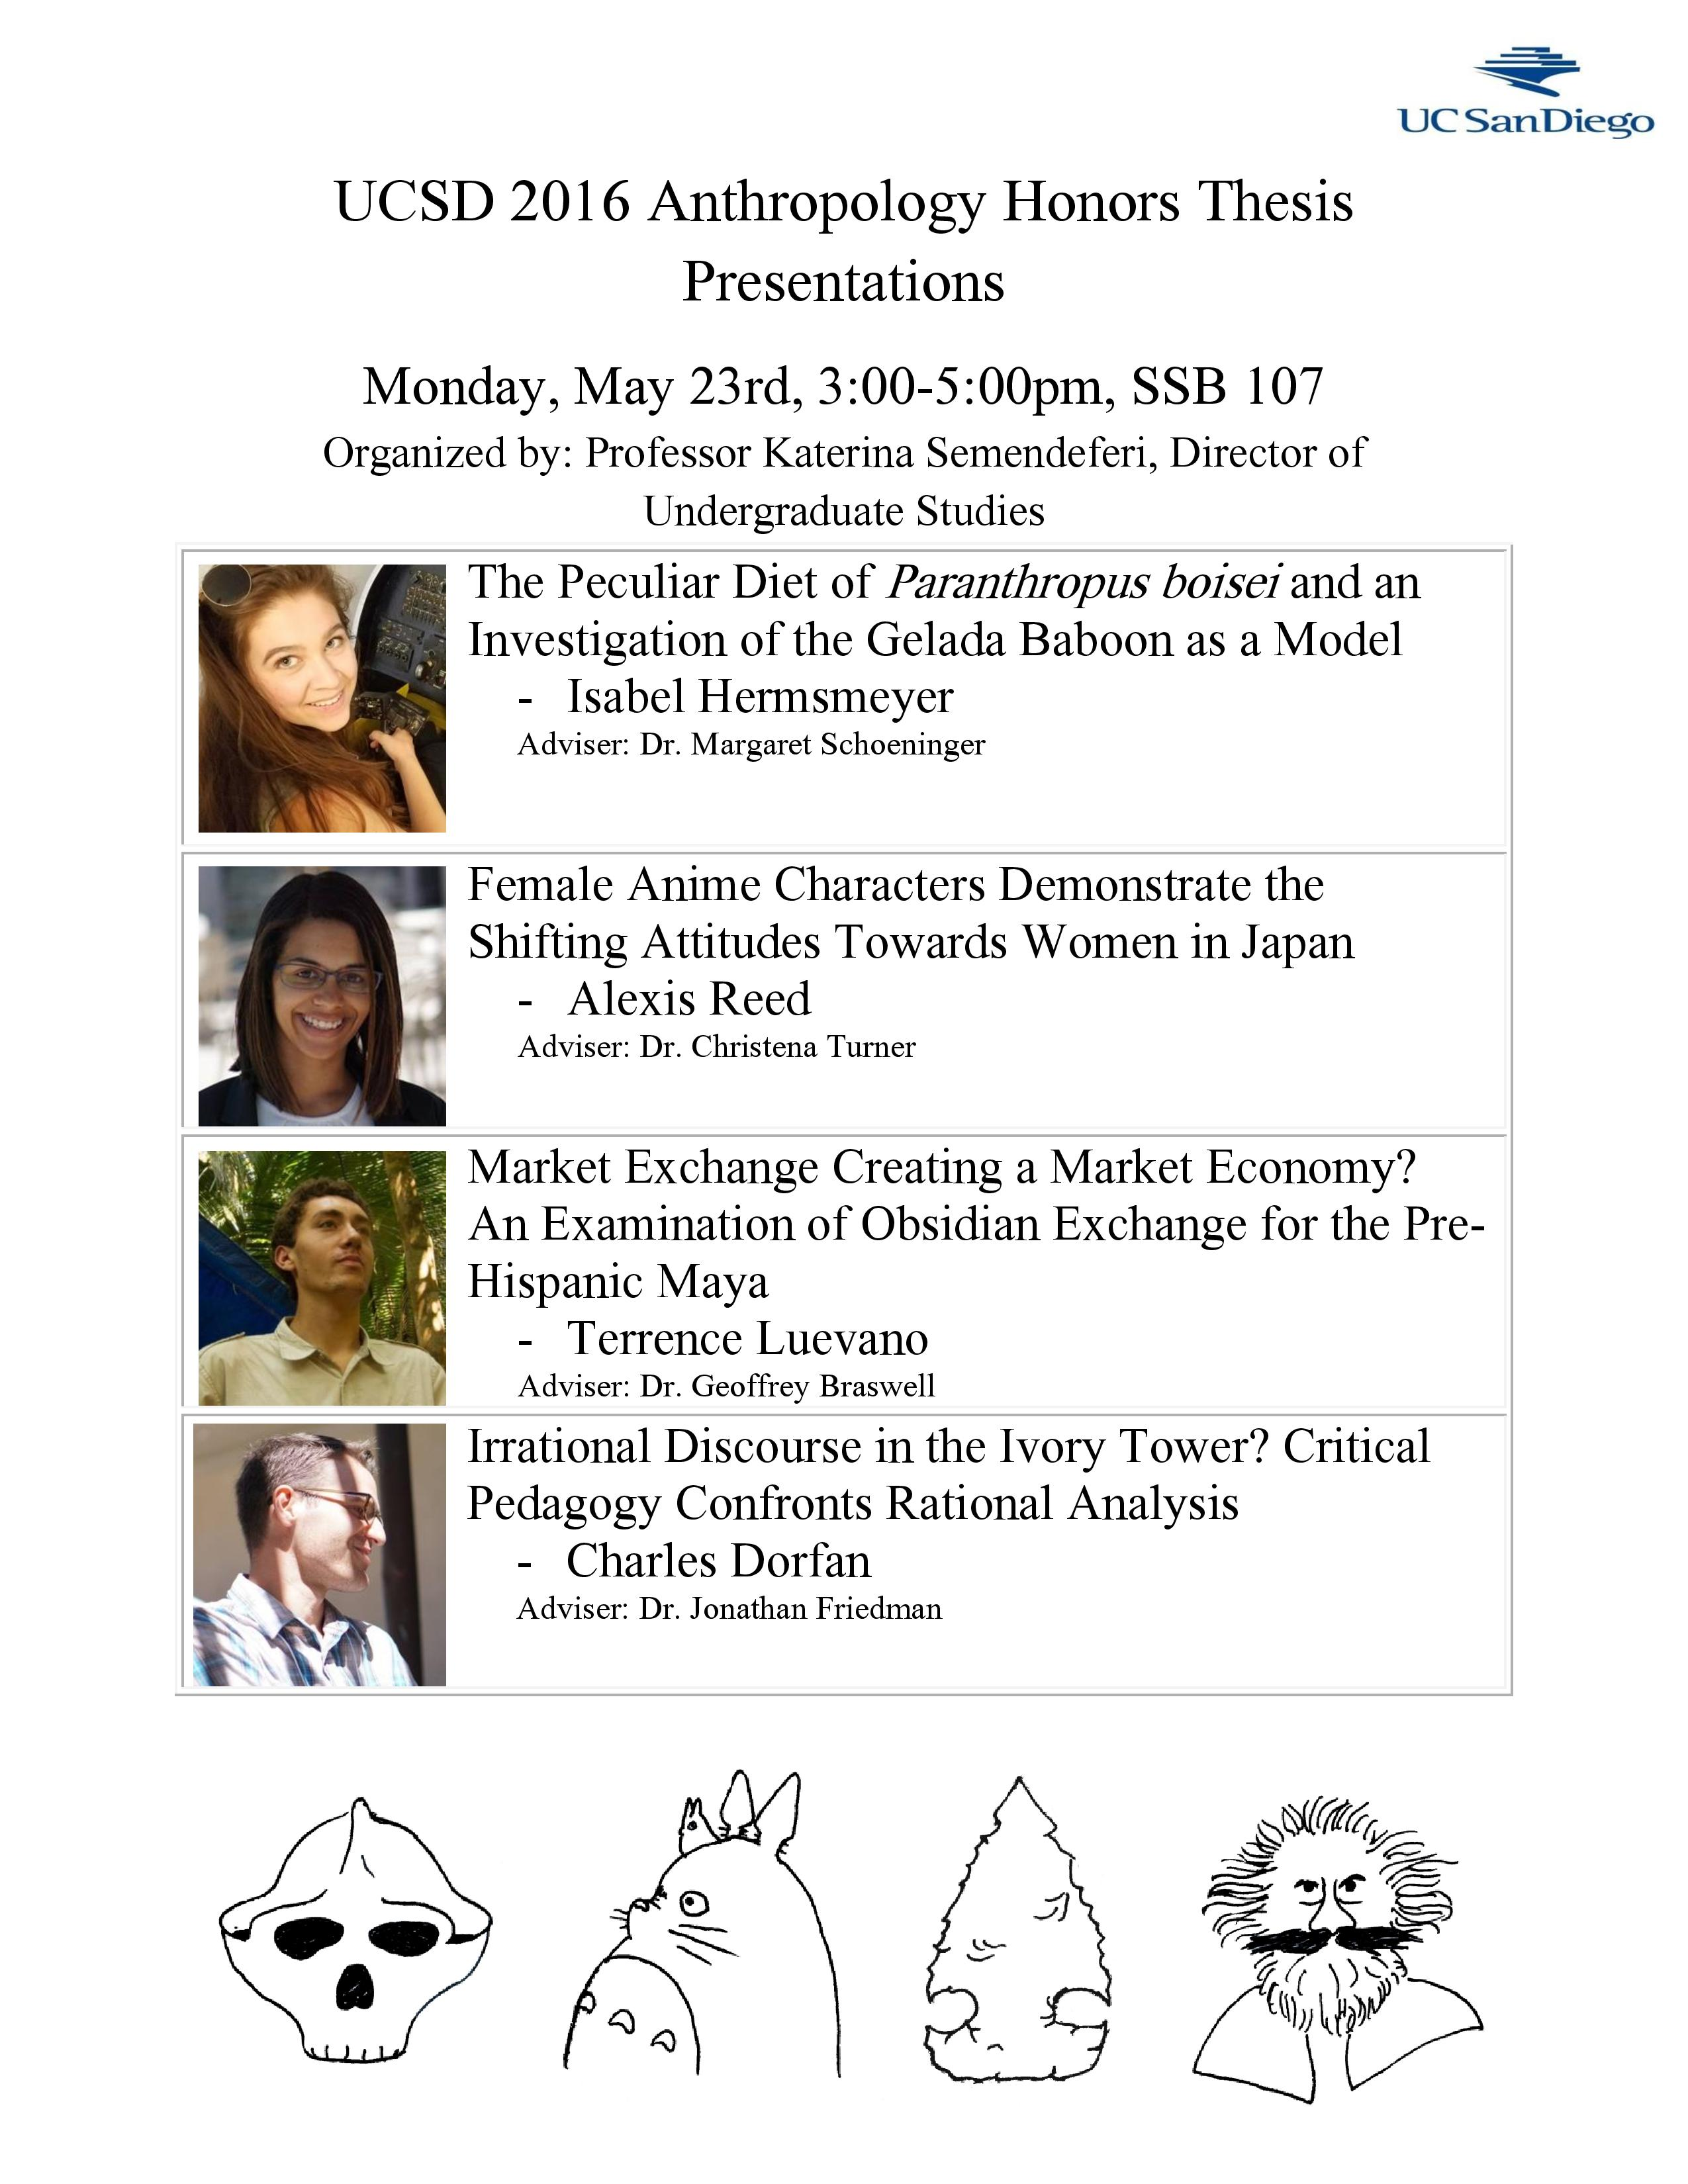 thesis defense flyer Department of biology honors thesis proposal defense april 24, 2017 location student union palmetto palm room k+conductance increased k+channel closed k+ p k+ pp2a pkg cgmp p i pde5 no downstream upstream cytosol title: honors thesis proposal defense flyer (spring 2017) created date: 20170412025608z.